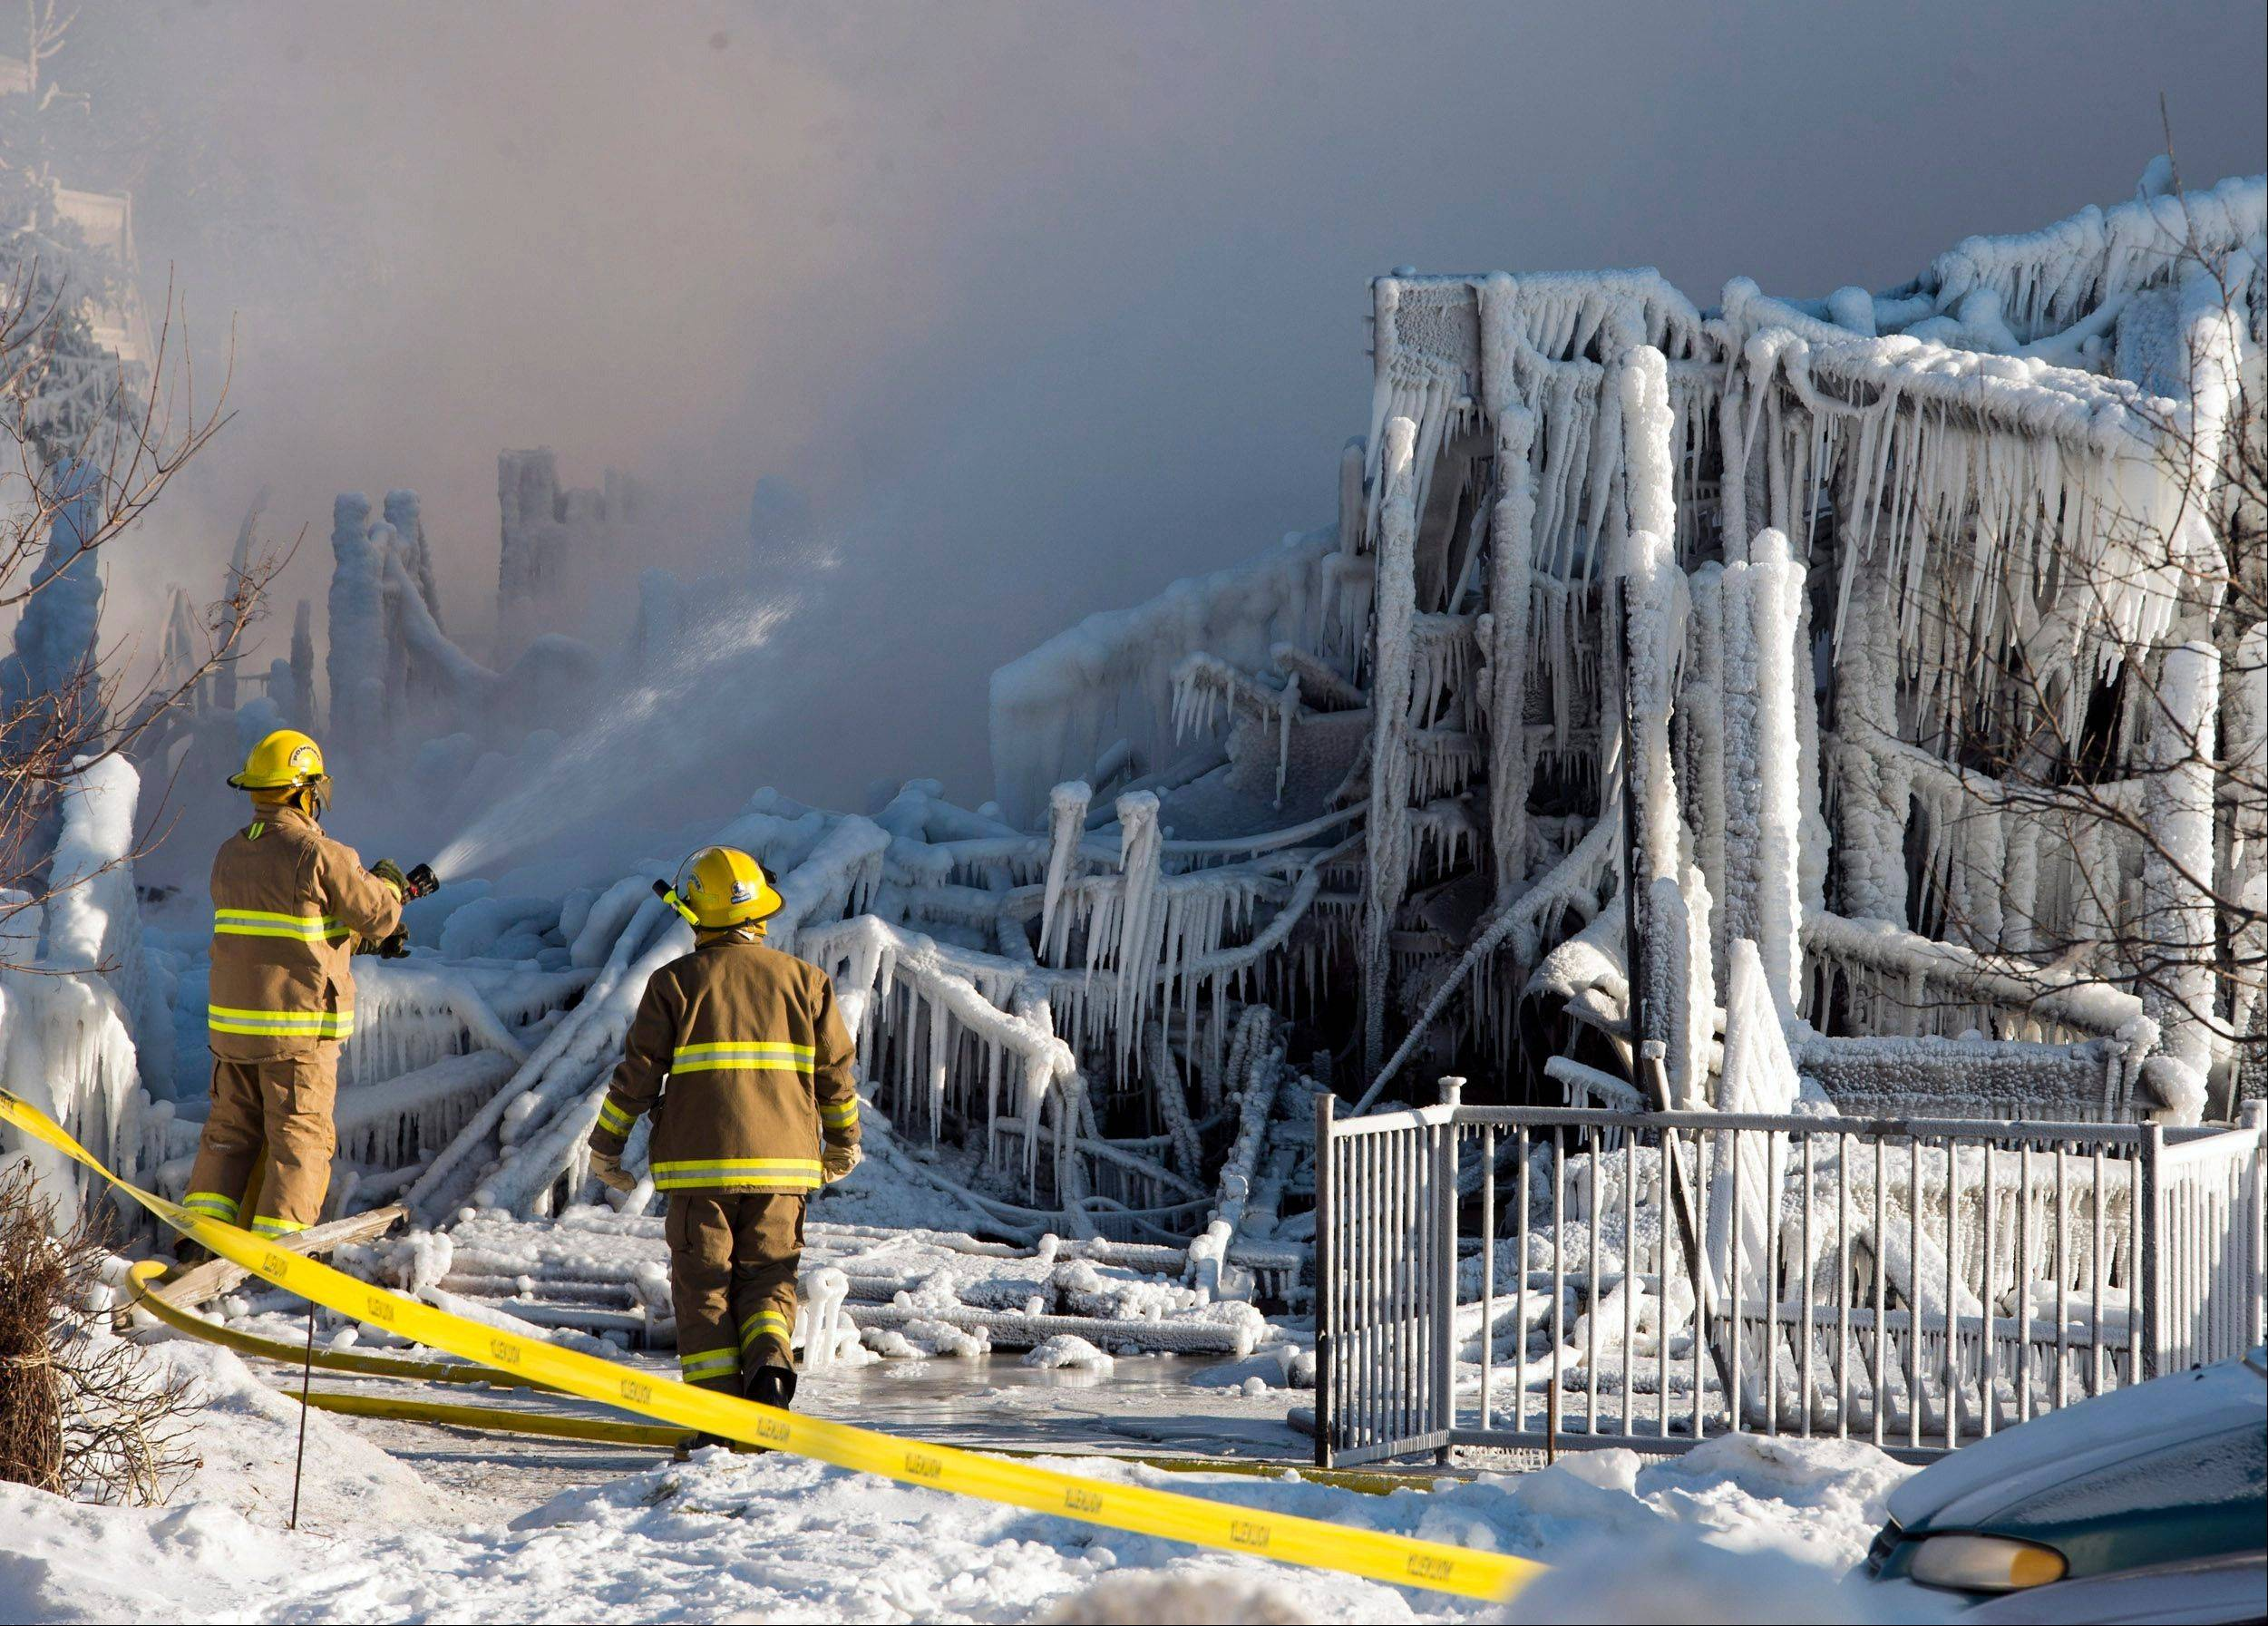 Firefighters continue to douse the rubble where fire destroyed a senior residence leaving at least five people dead and 30 unaccounted for in L'Isle-Verte, Que., Thursday, Jan. 23, 2014 The fire trapped terrified residents, most of them dependent on wheelchairs and walkers.